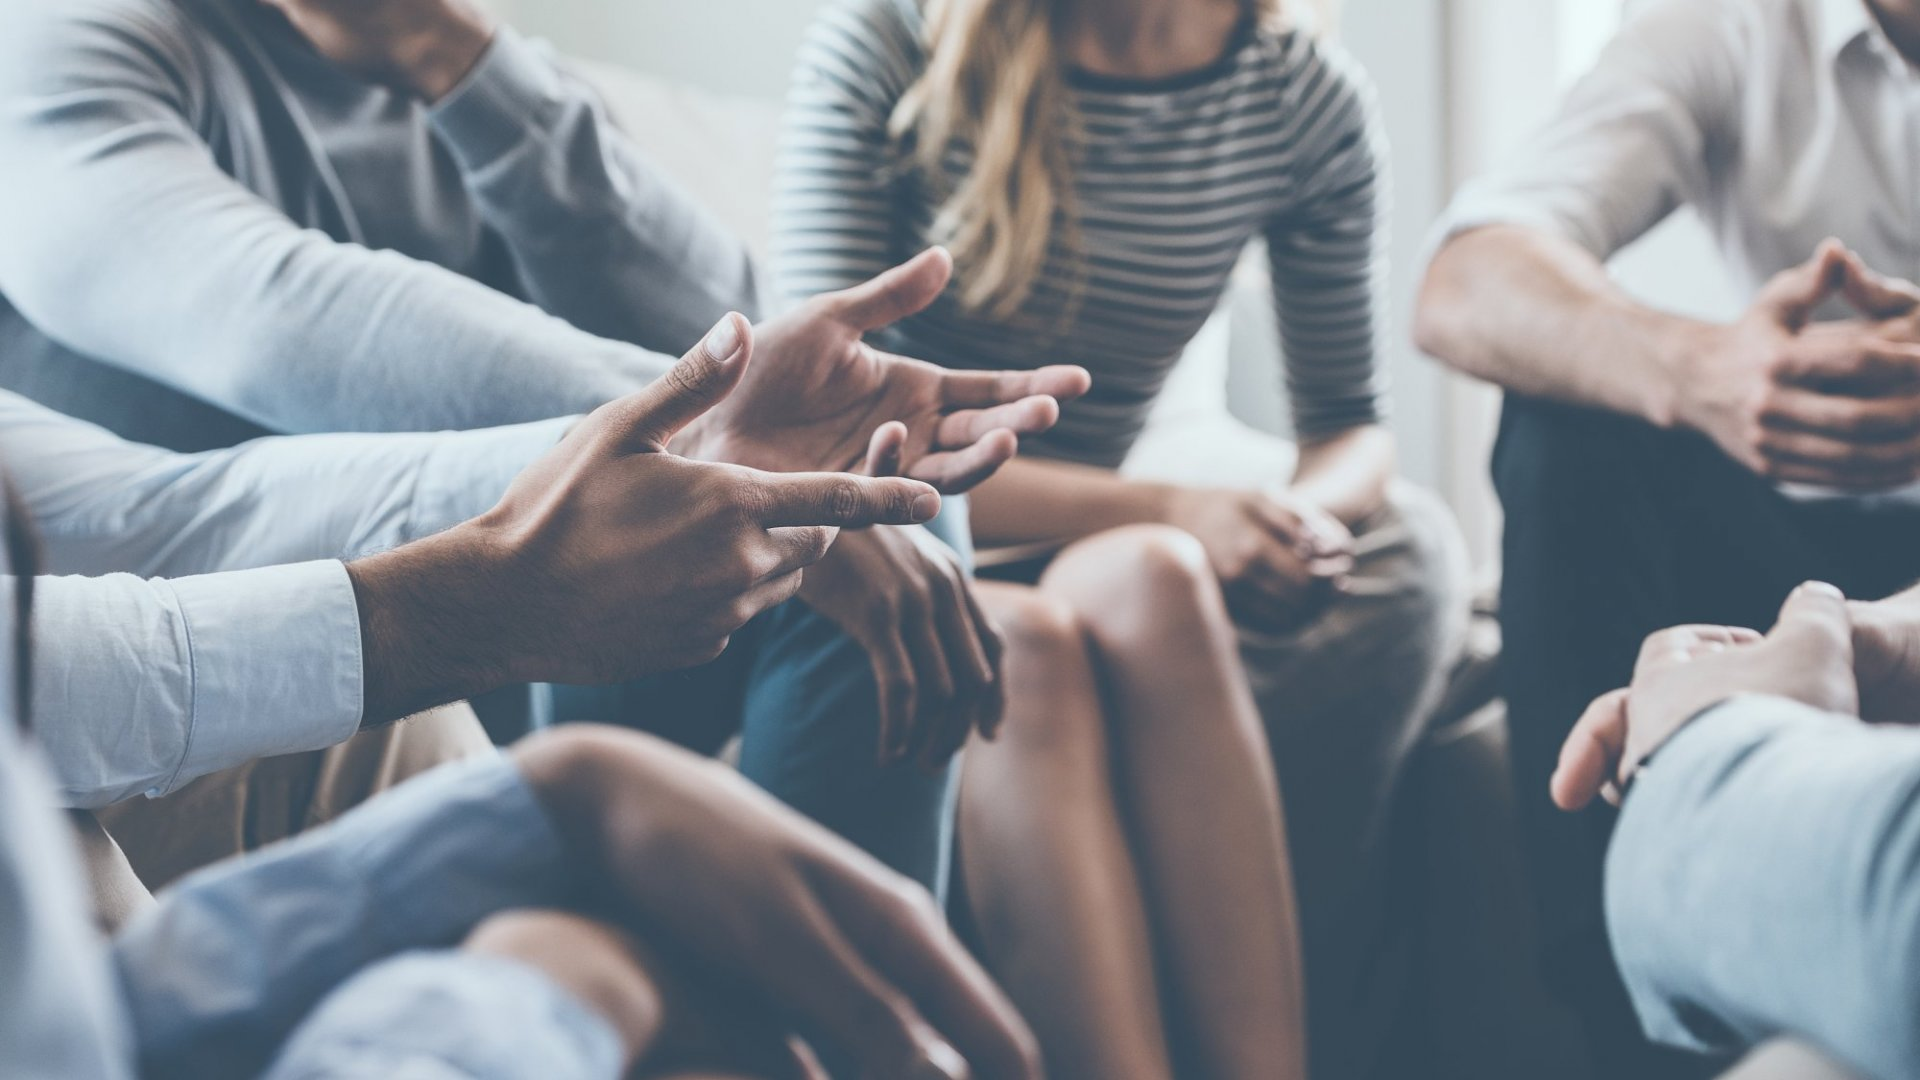 3 Ways to Build Mental Health into Your Corporate Culture